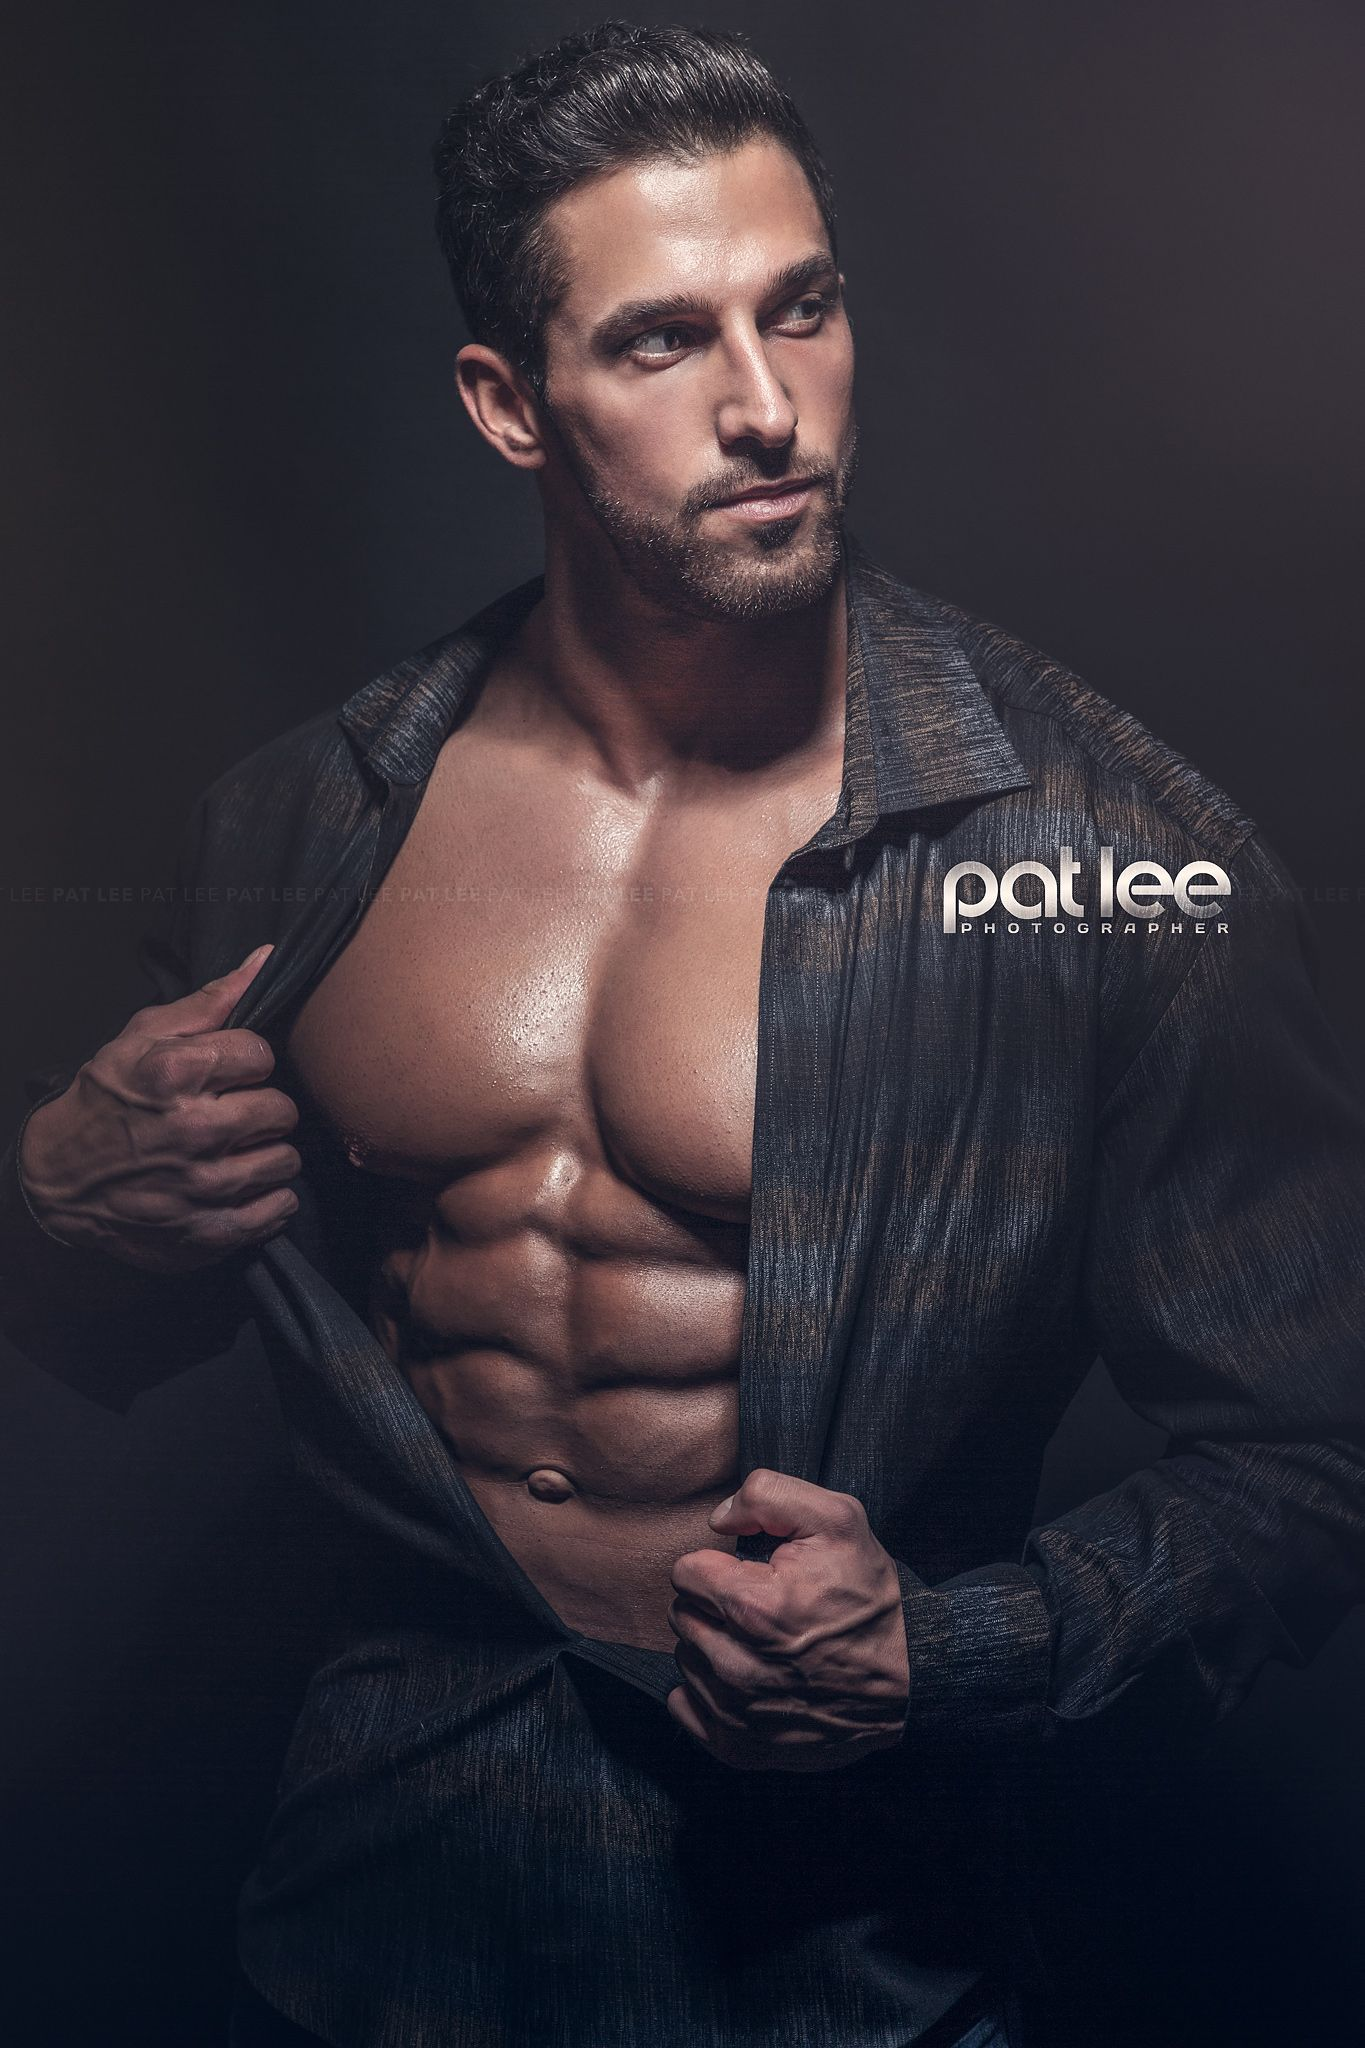 Pin on Photography by Pat Lee